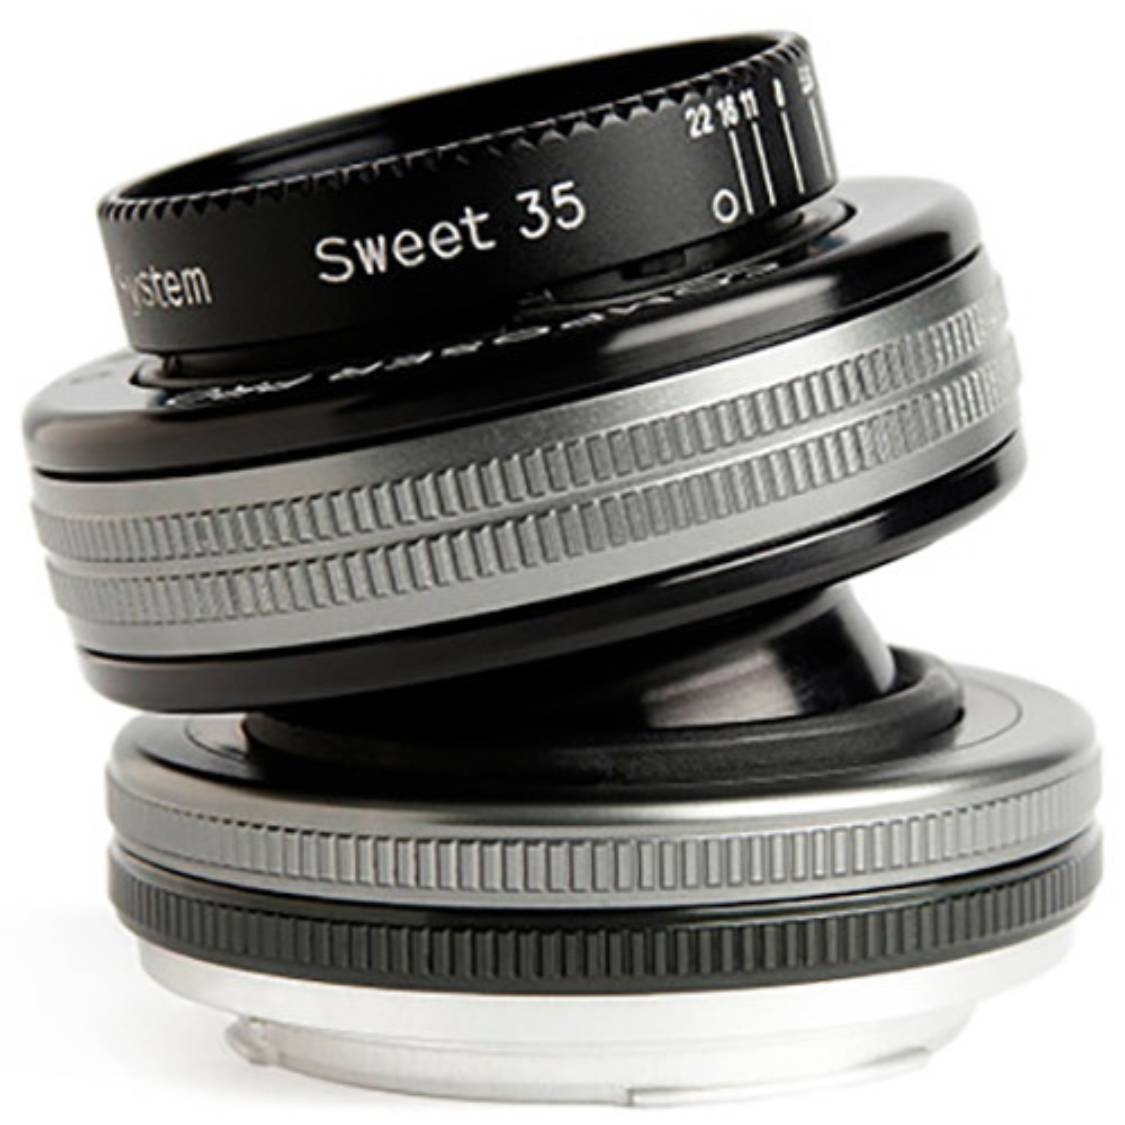 Lensbaby Composer Pro with Sweet 35 Lens (Sony E)